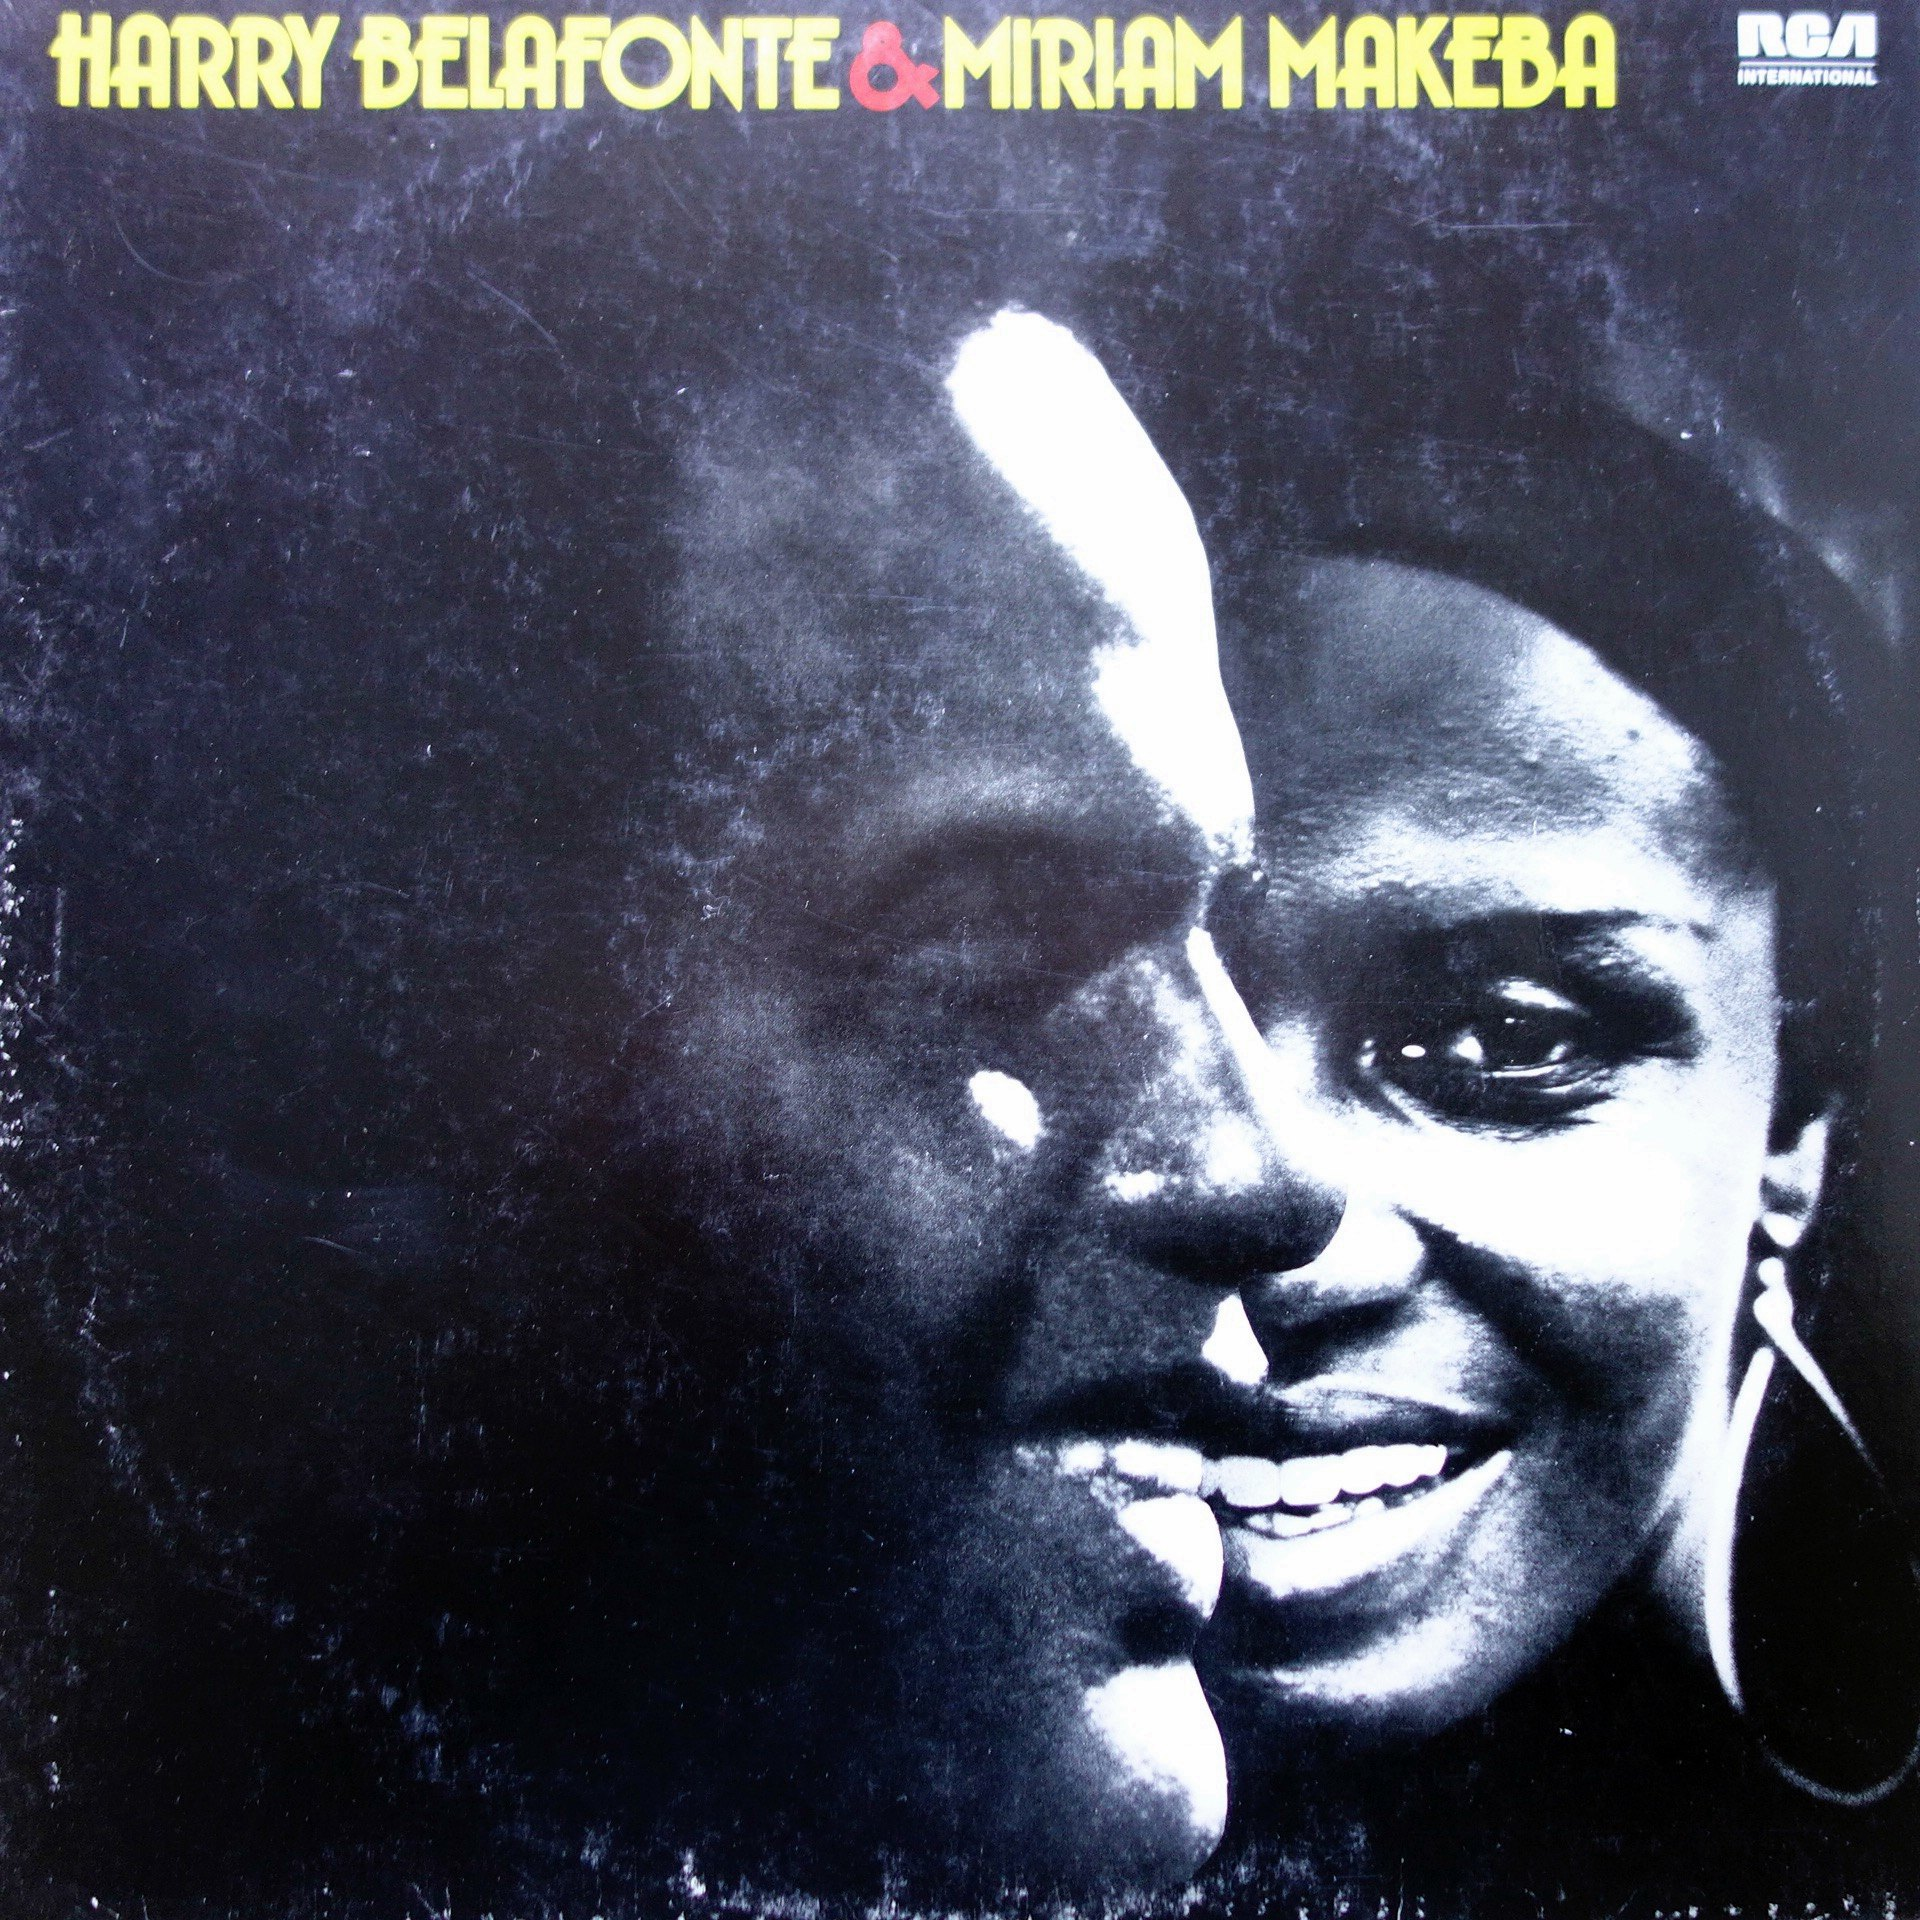 2xLP Harry Belafonte & Miriam Makeba